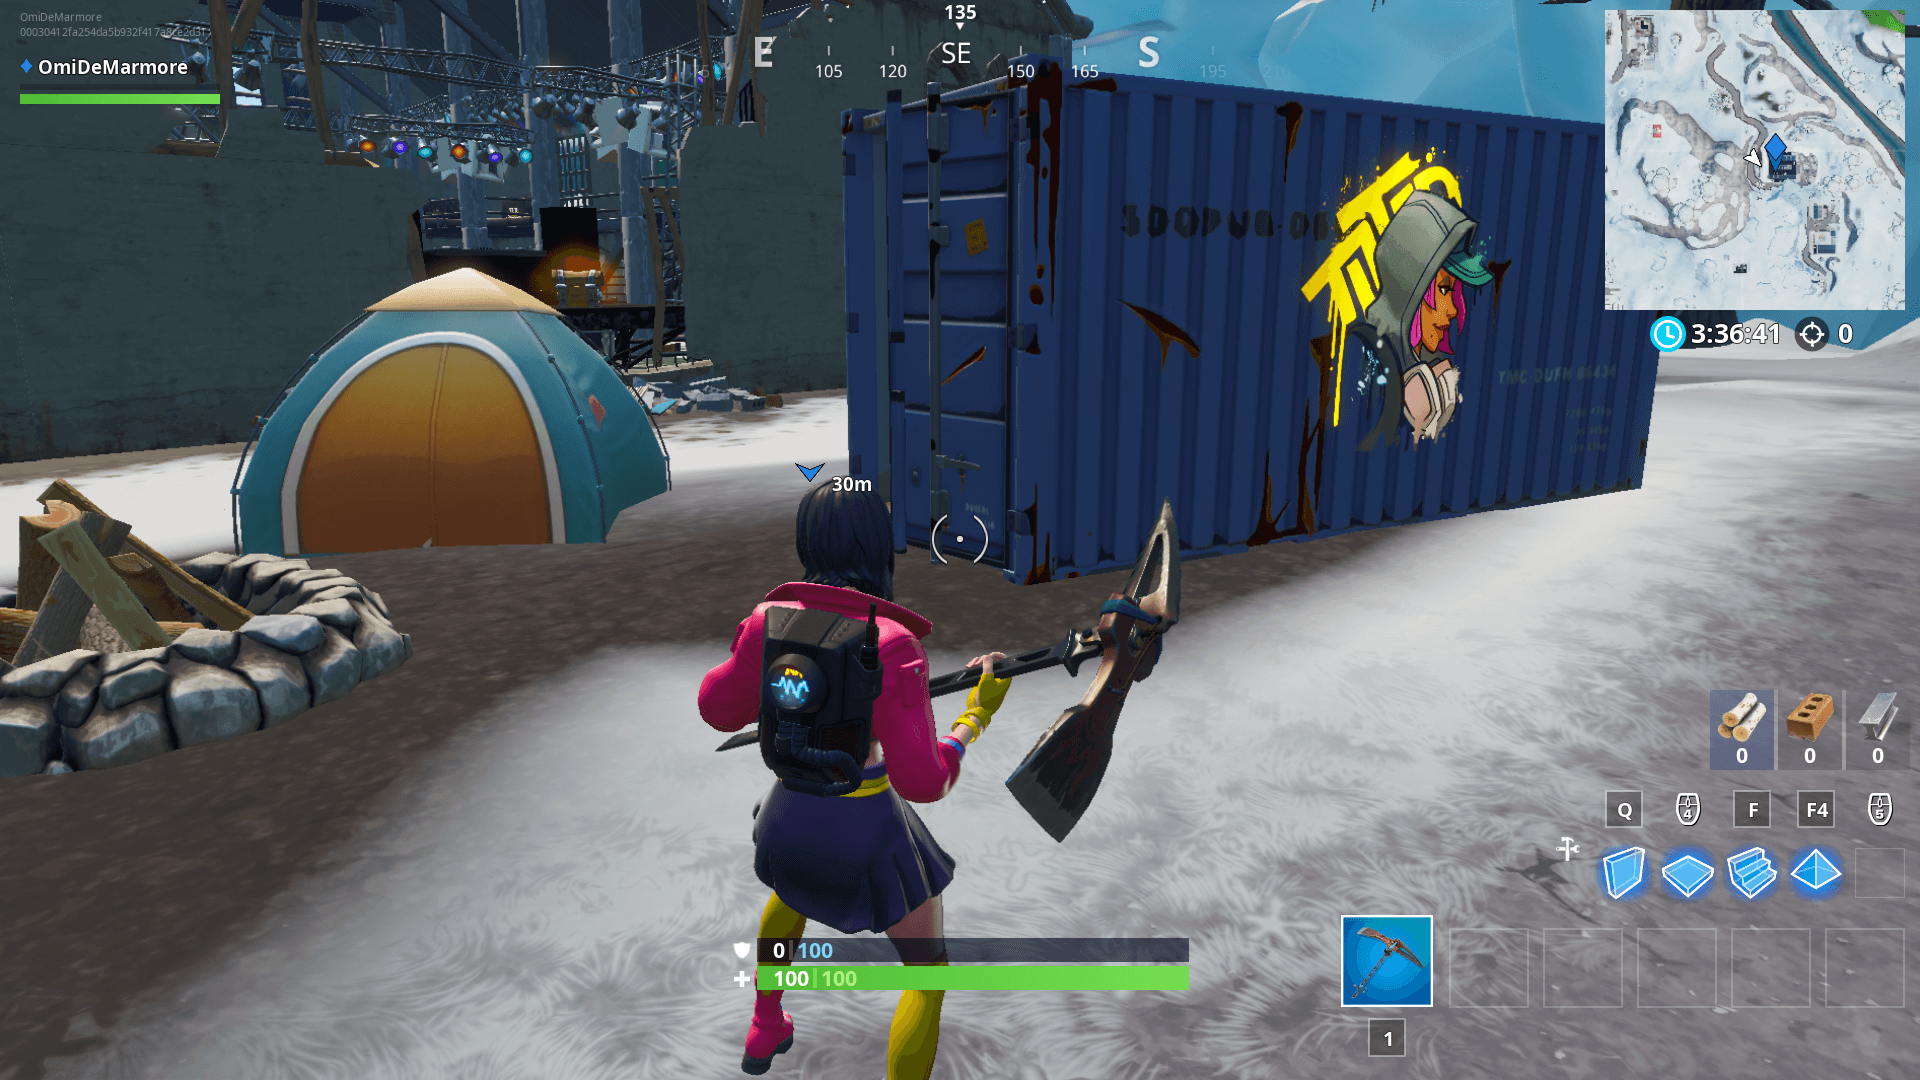 Where to find spray cans for Fortnite's Spray and Pray ...